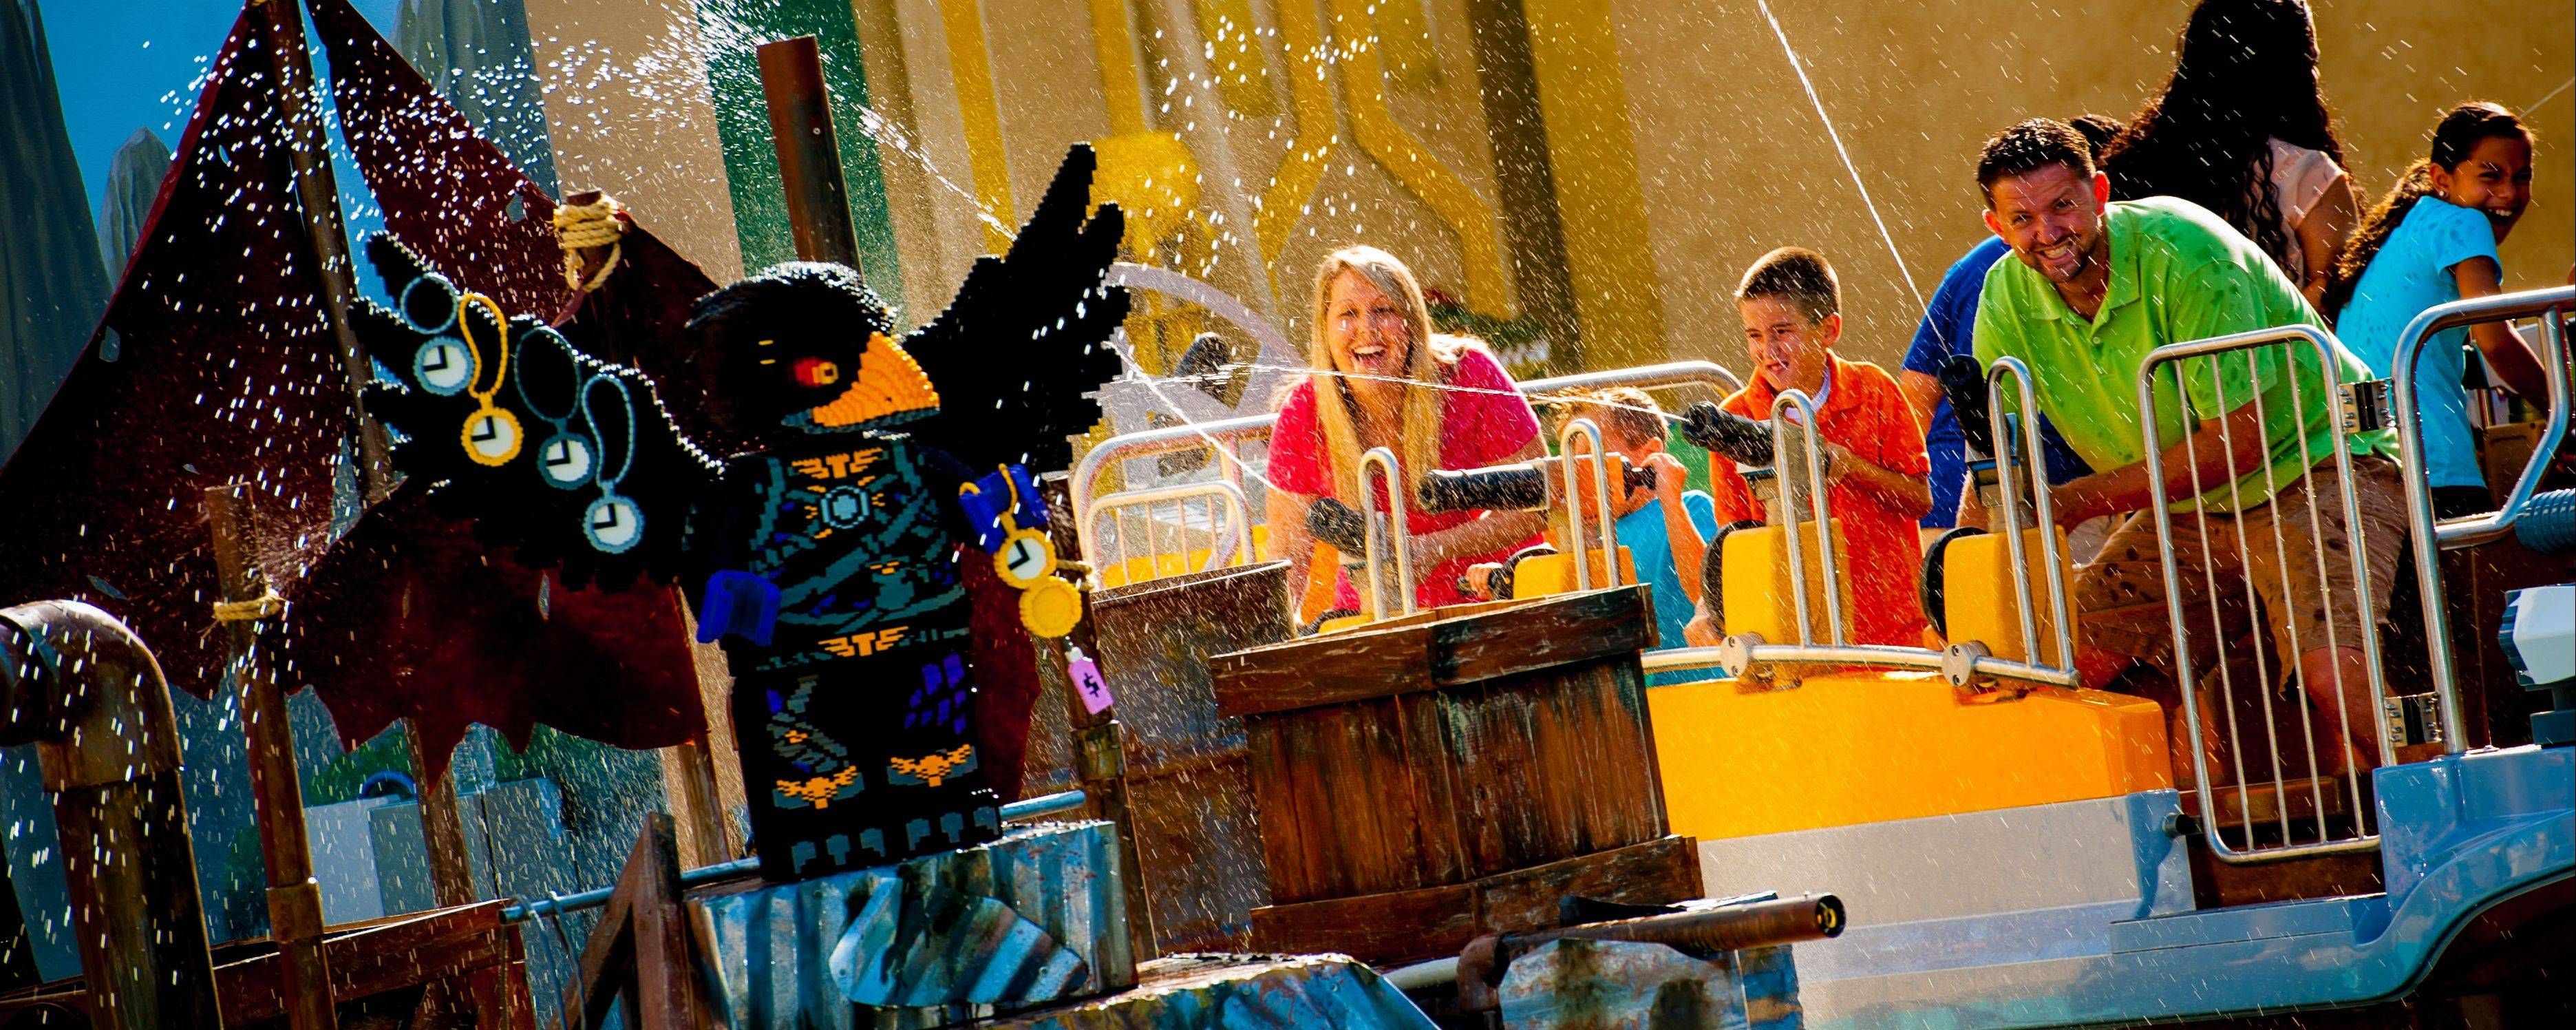 Families at Legoland Florida enjoy the theme park's new interactive water ride, The Quest for Chi. This is one of several attractions that opened at theme parks this summer.